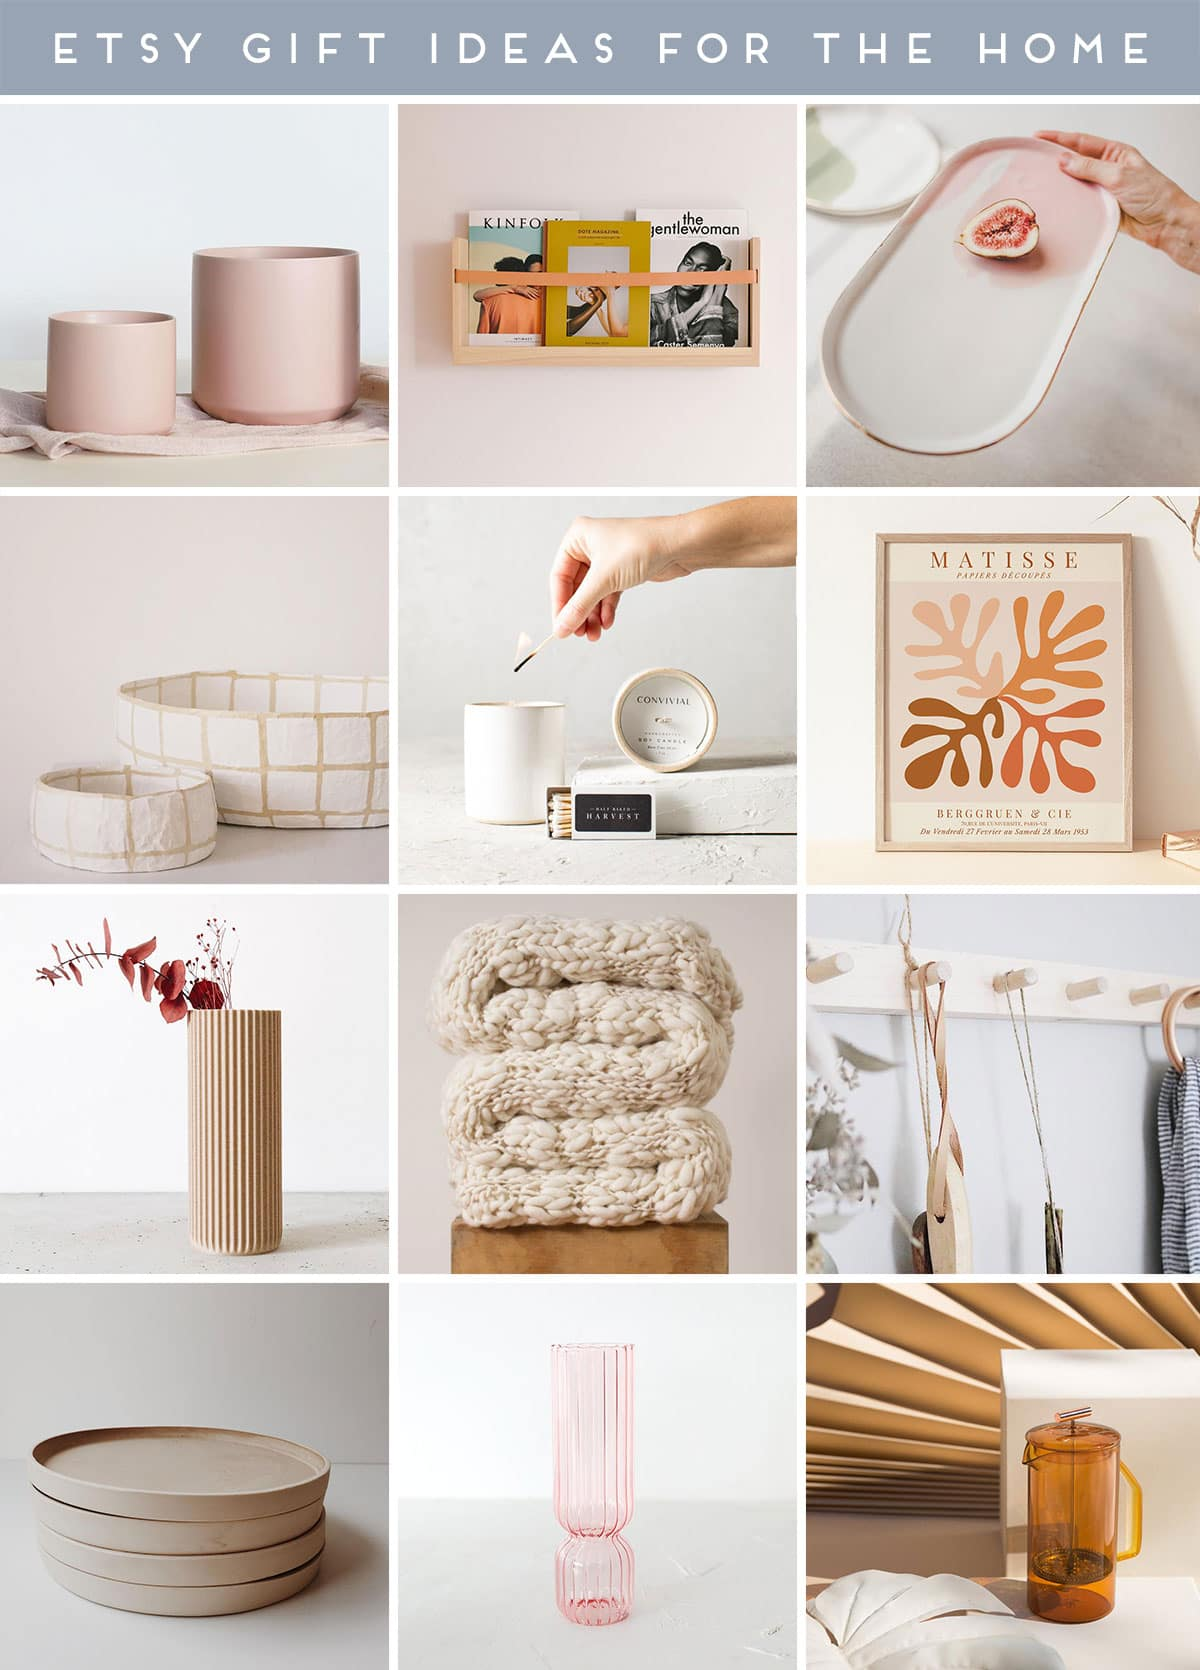 Roundup image of home decor items - all from Etsy